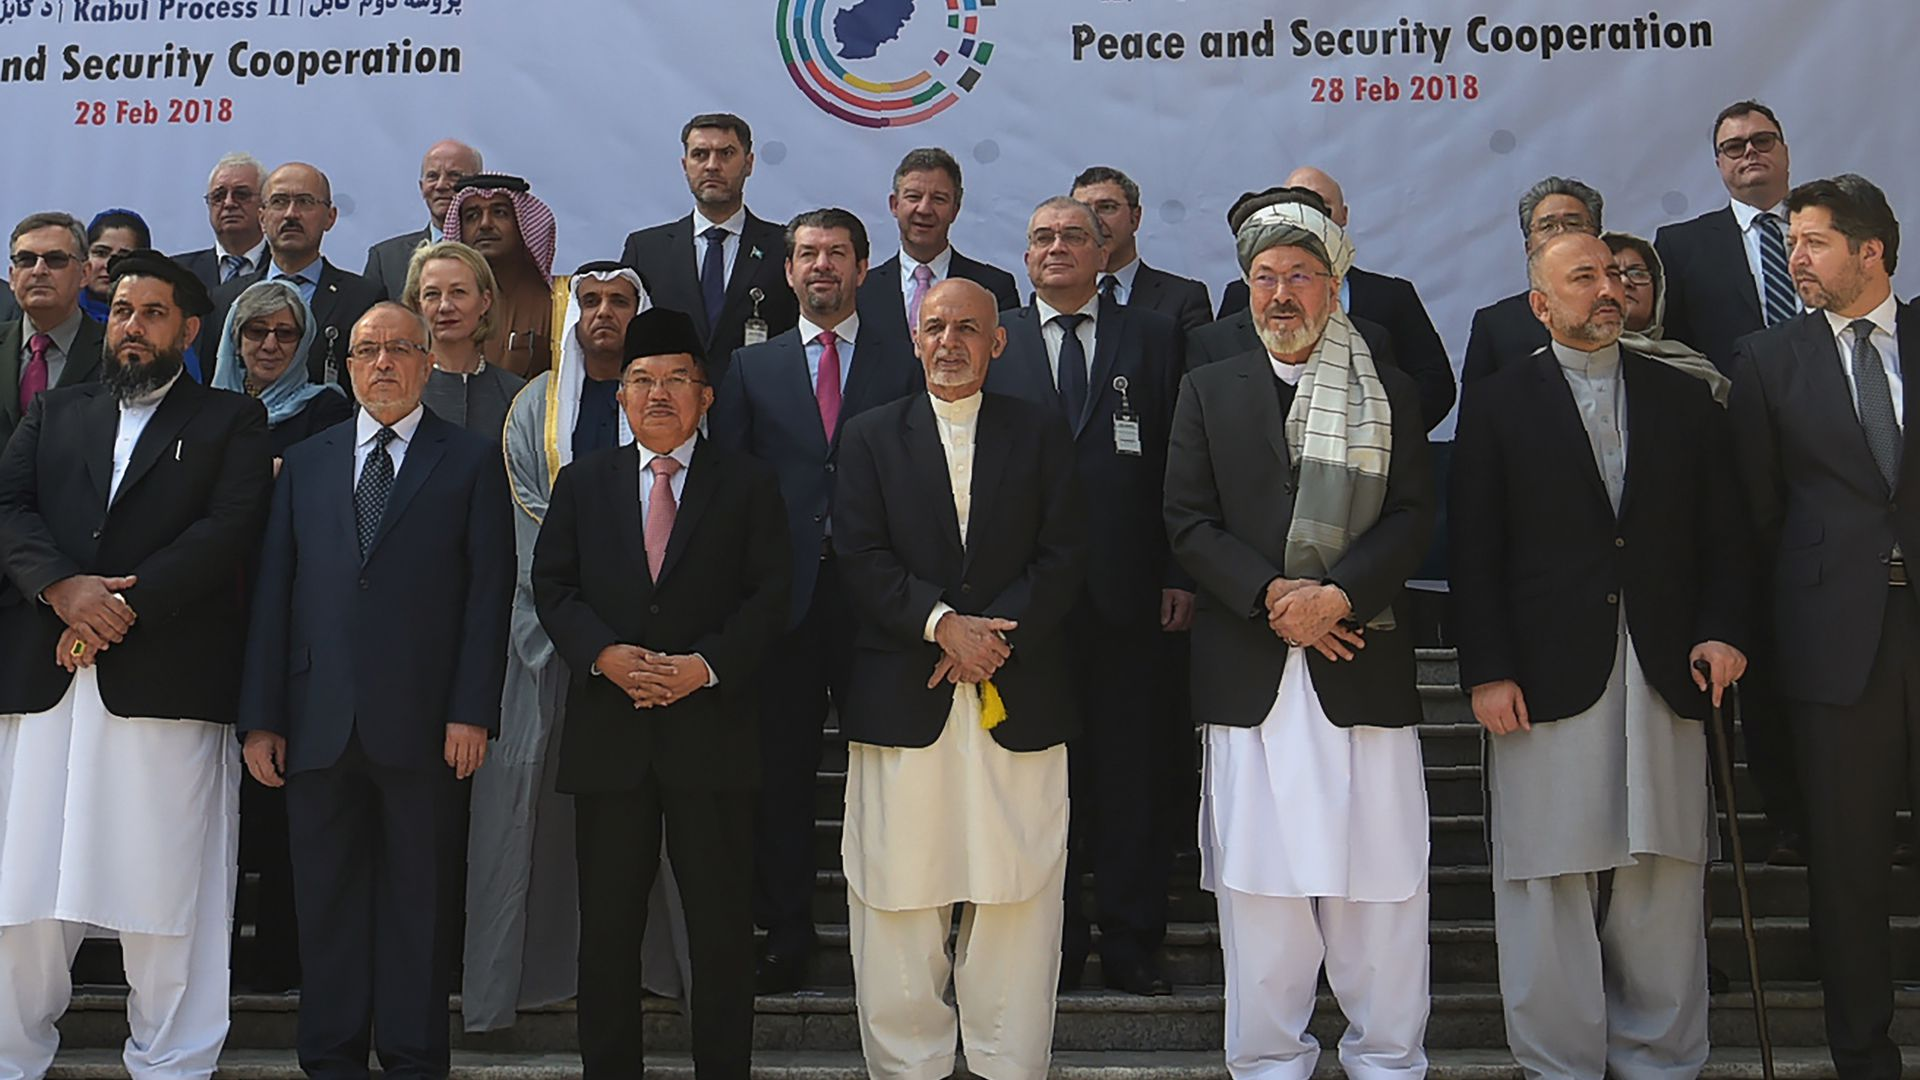 Afghan President Ashraf Ghani at a peace conference in Kabul